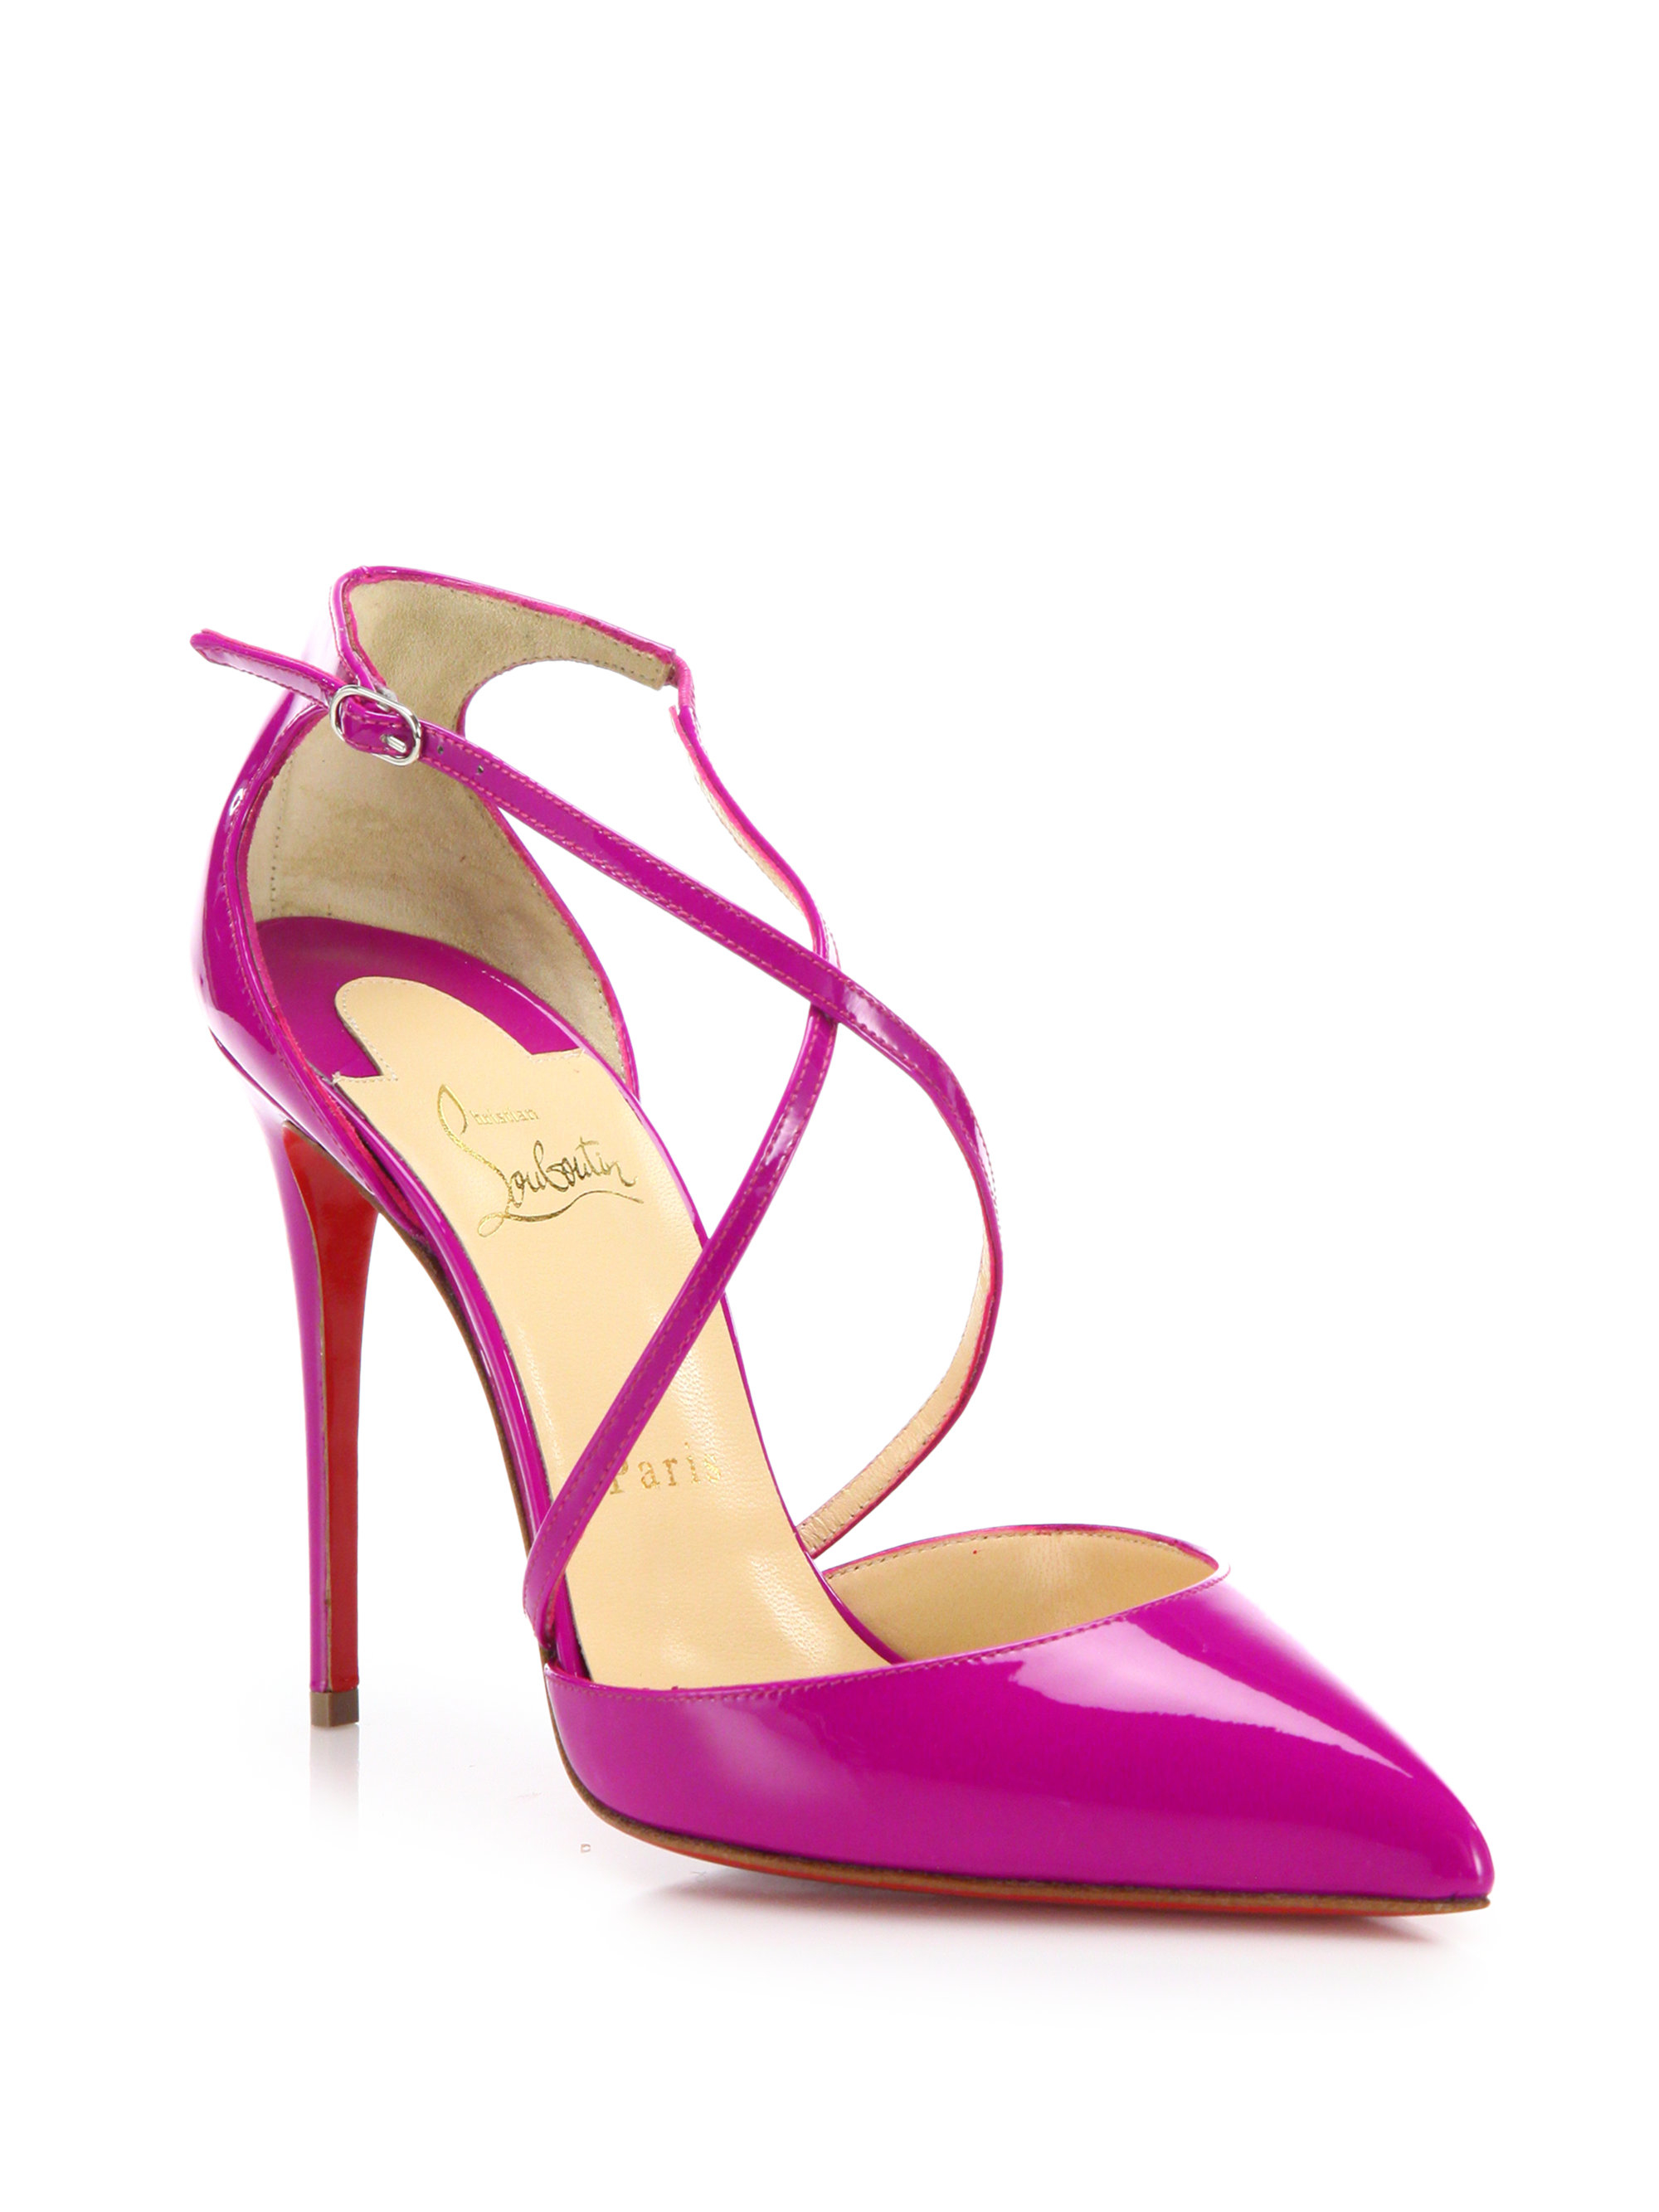 louis vuitton red bottom shoes price - Christian louboutin Blake Crossover Patent Leather Pumps in Pink ...